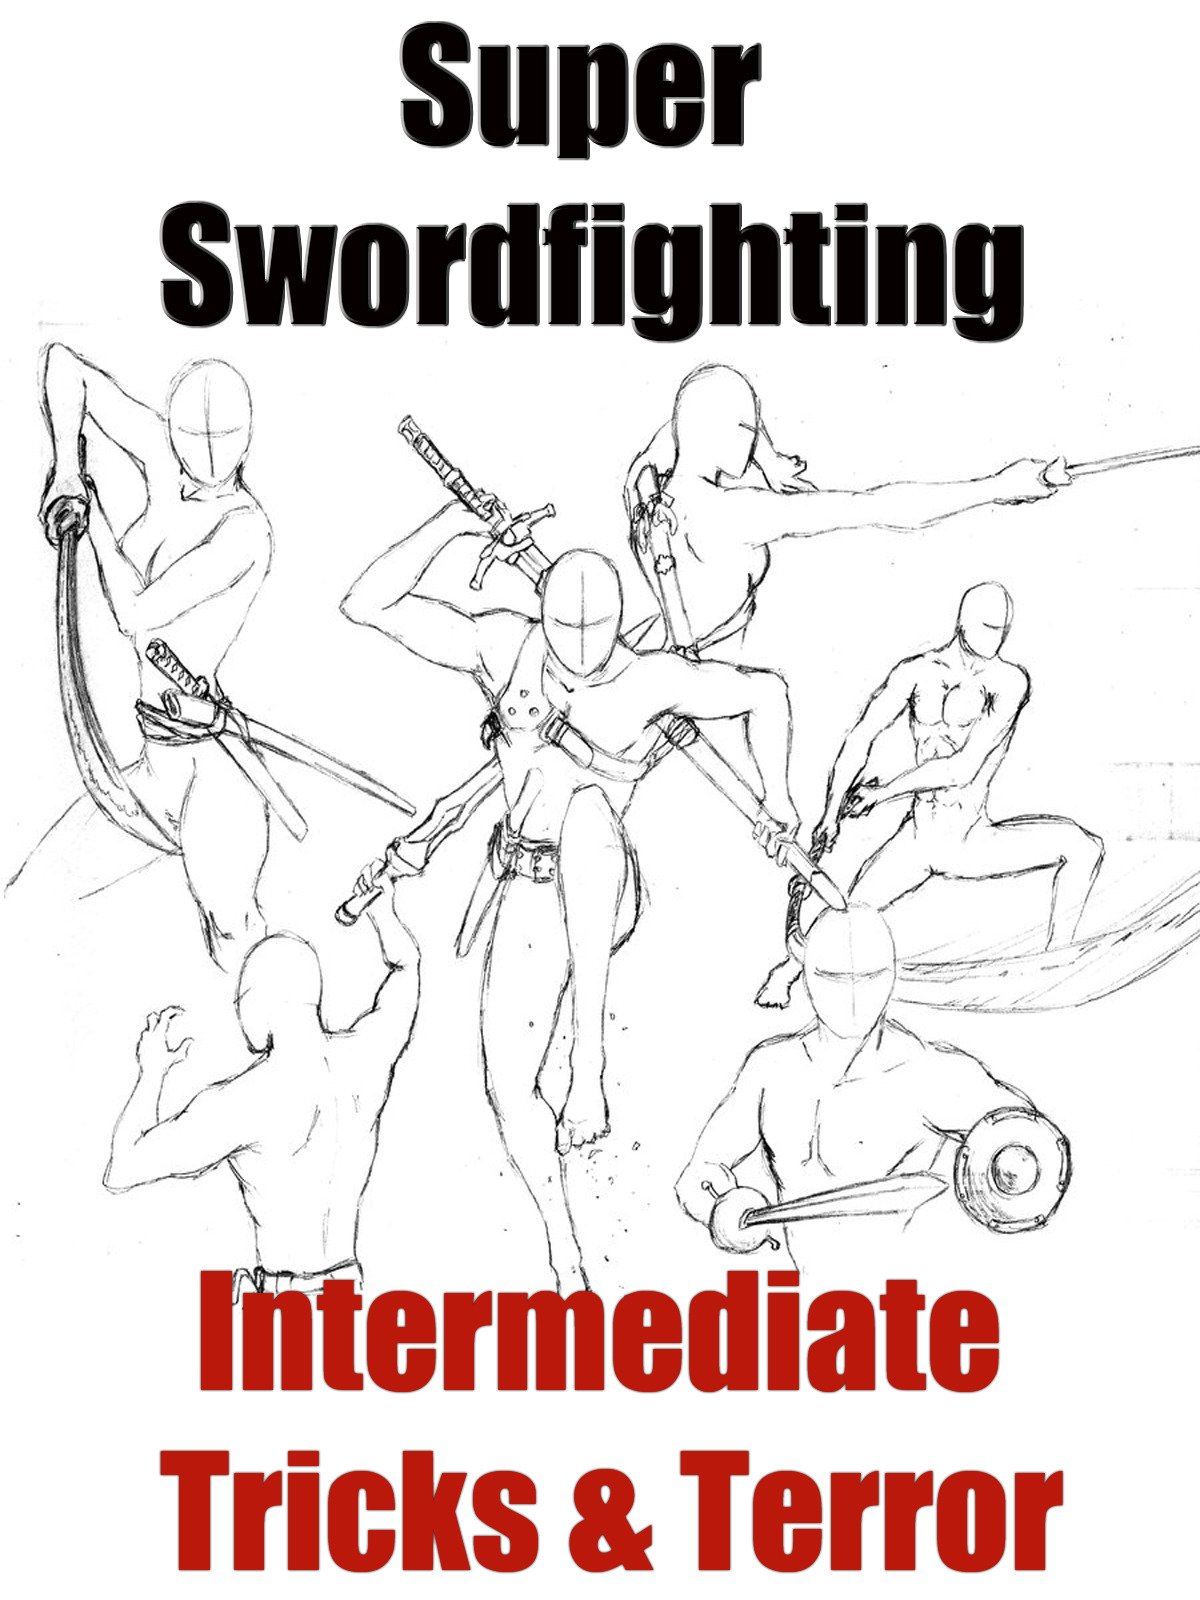 Super Swordfighting Techniques Intermediate on Amazon Prime Video UK